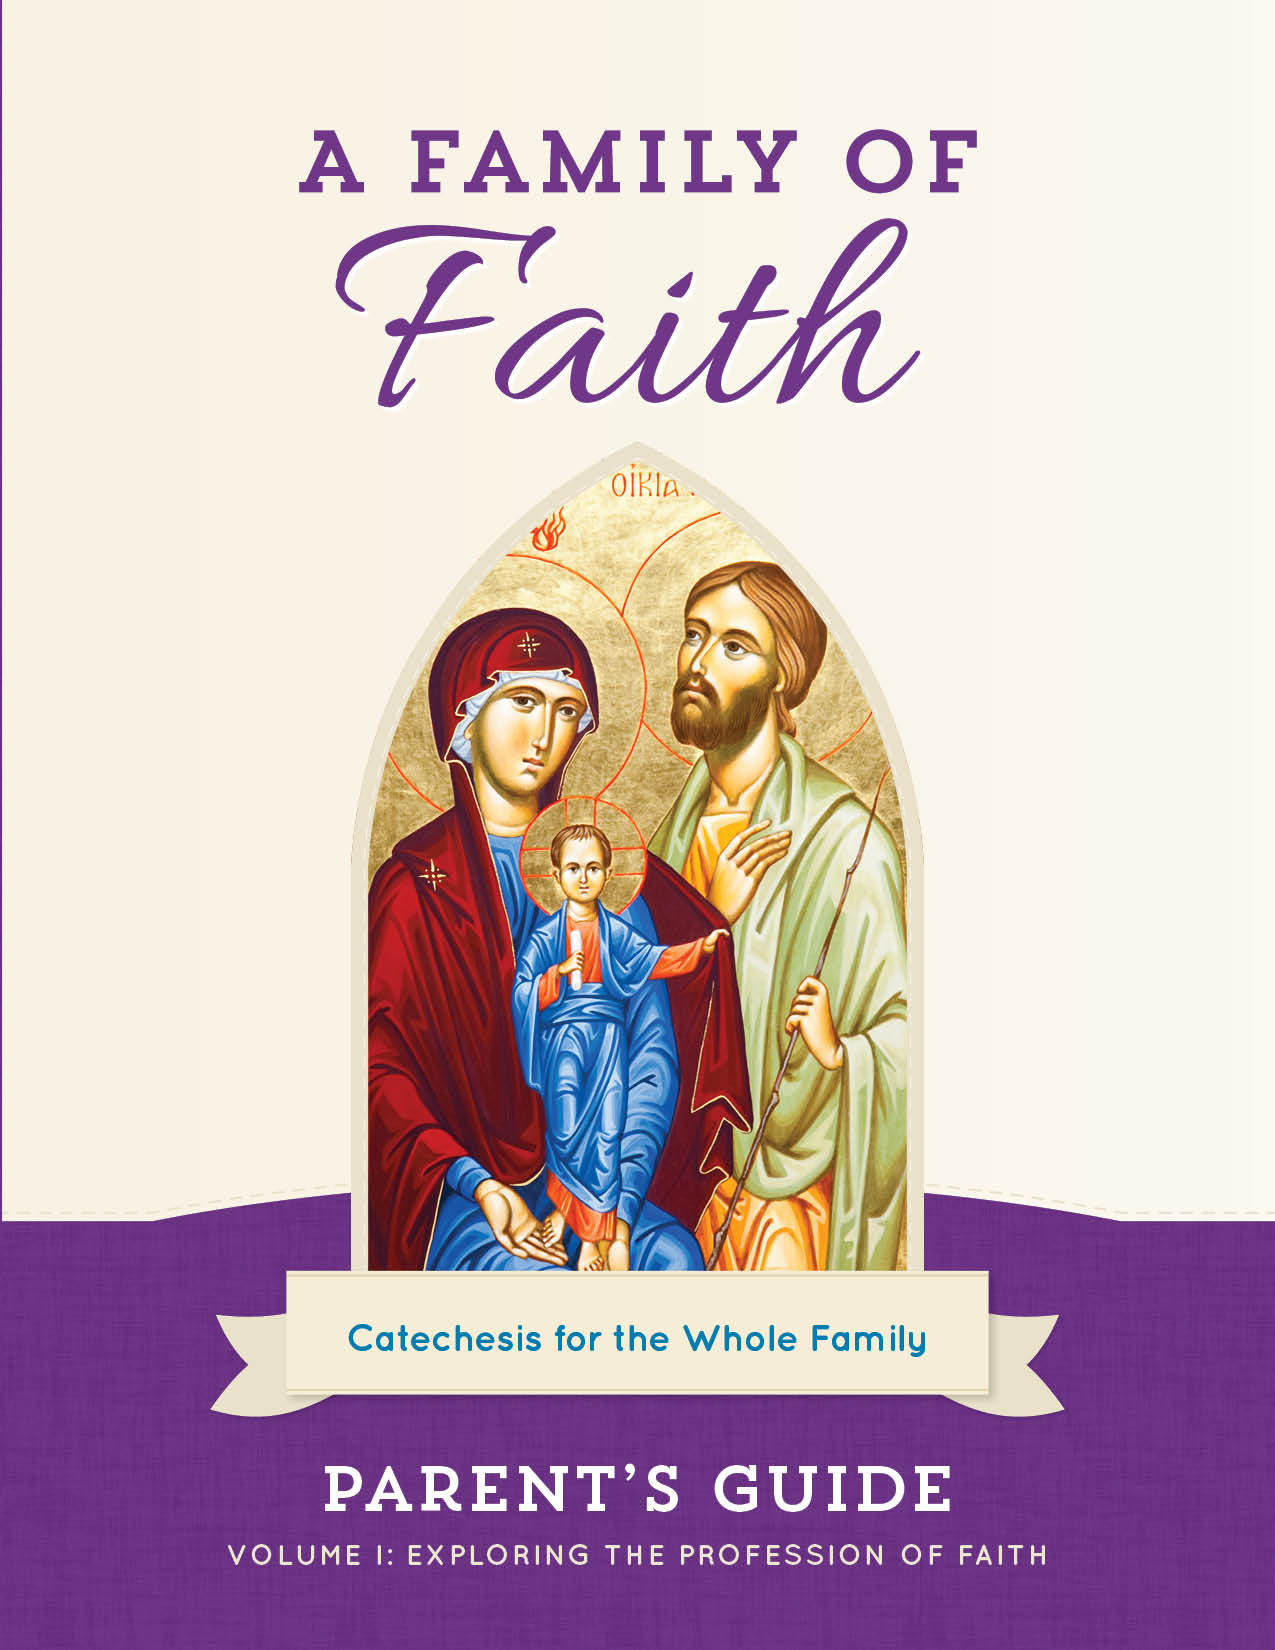 A Family of Faith Parent's Guide Volume I: Exploring the Profession of Faith